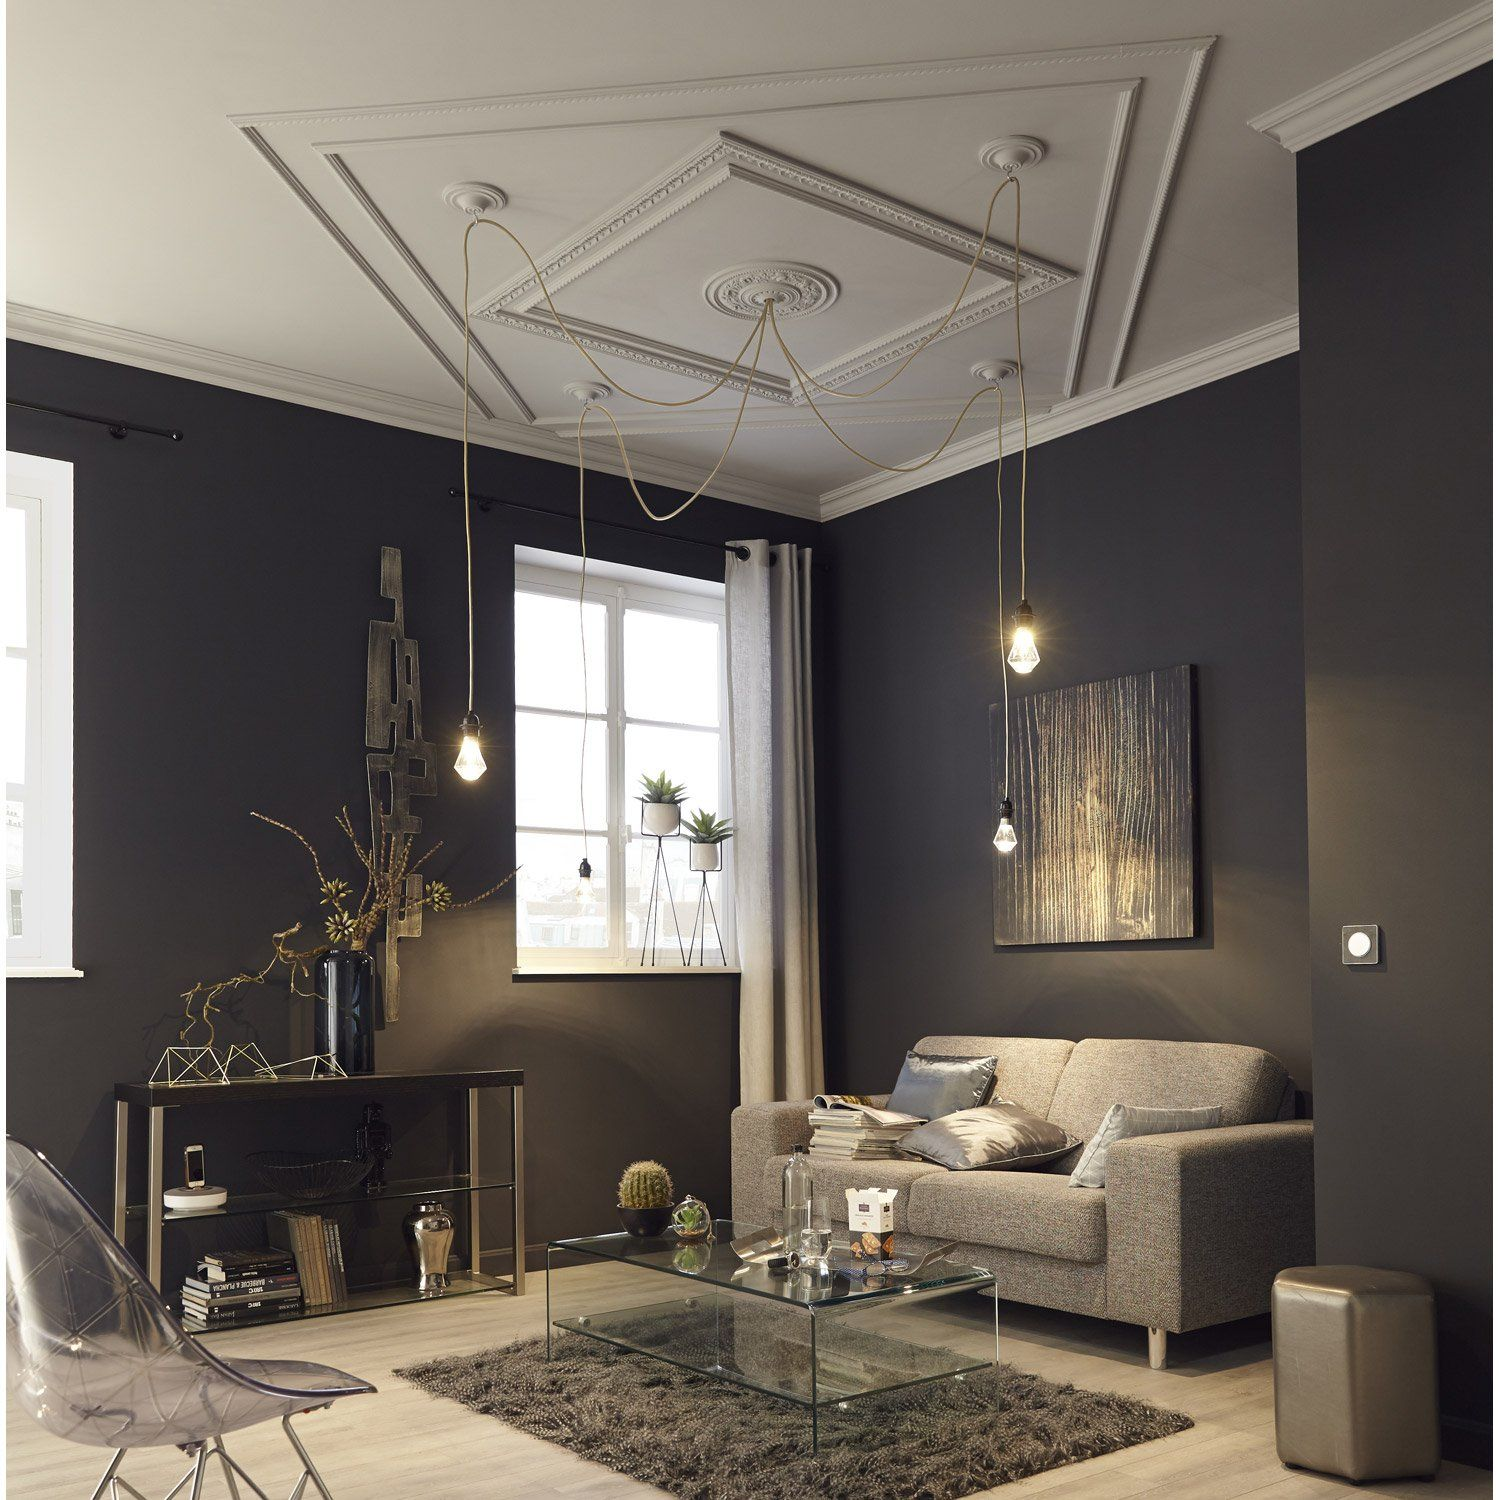 moulure de plafond d101 polystyr ne extrud 8 x 200 cm leroy merlin rev tements sols murs. Black Bedroom Furniture Sets. Home Design Ideas